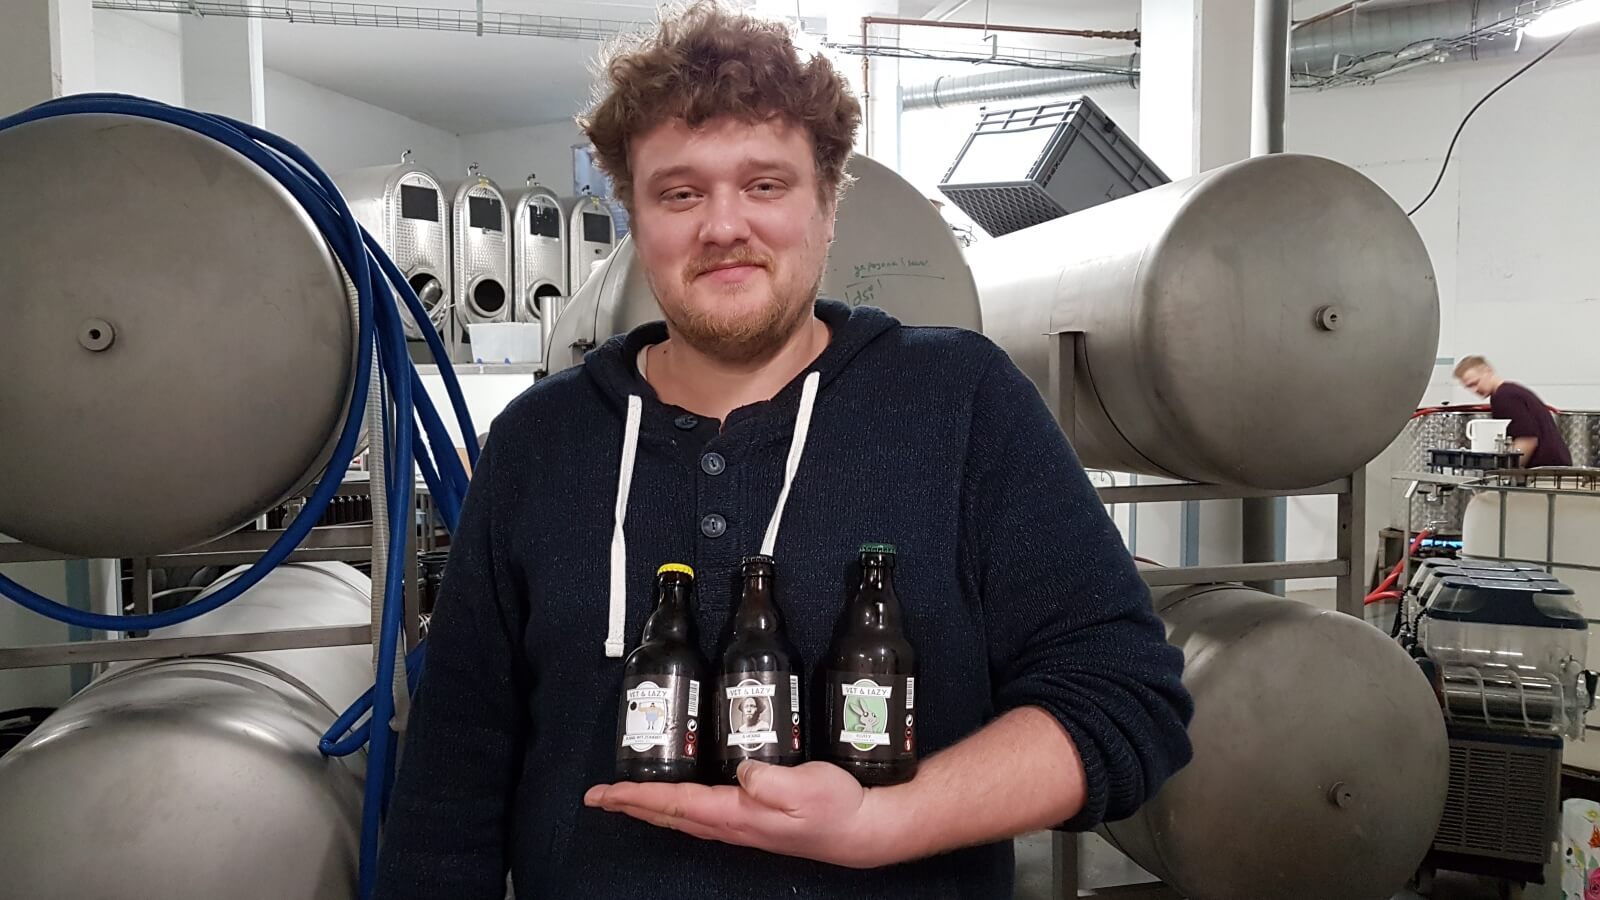 Ruben Krommenhoek with some of his beers, including 'Your Mother'